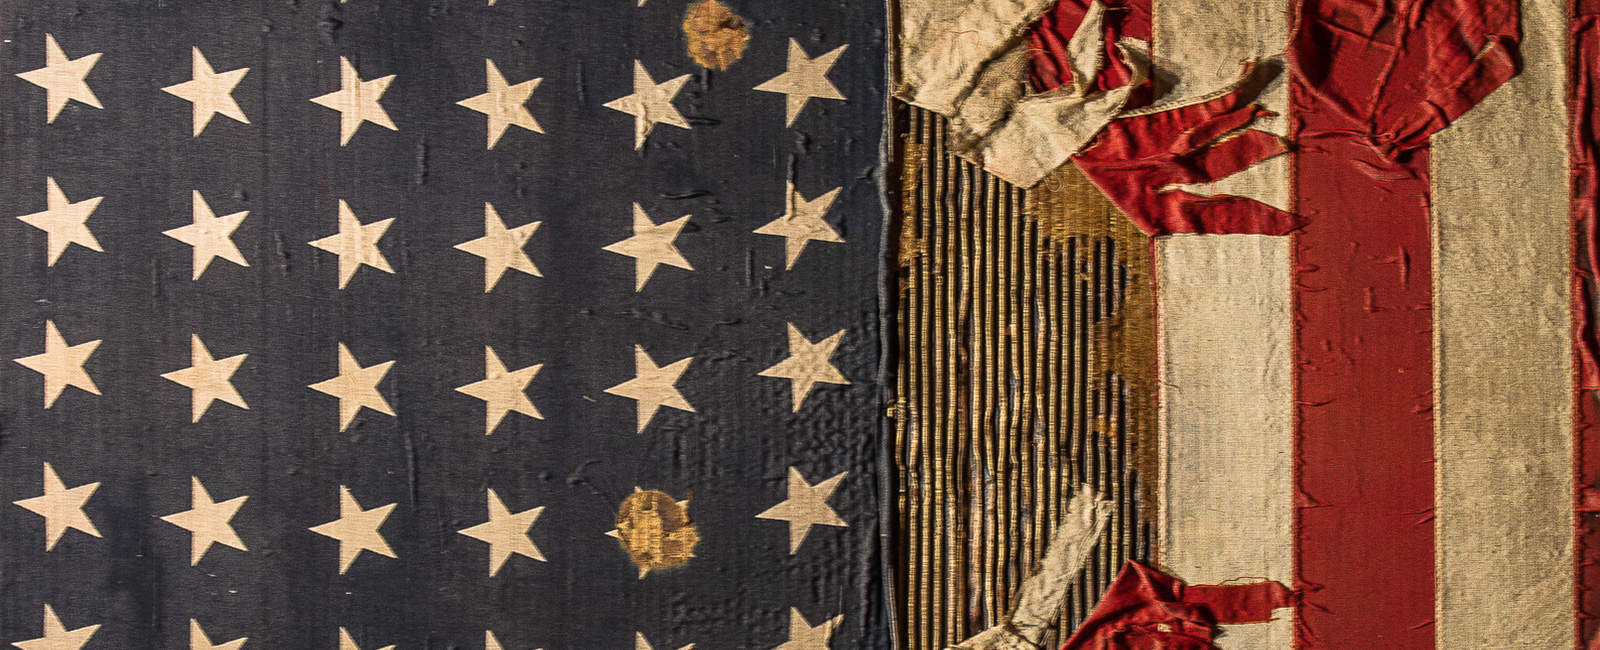 Distressed American Flag artwork that is showcased in the hotel.